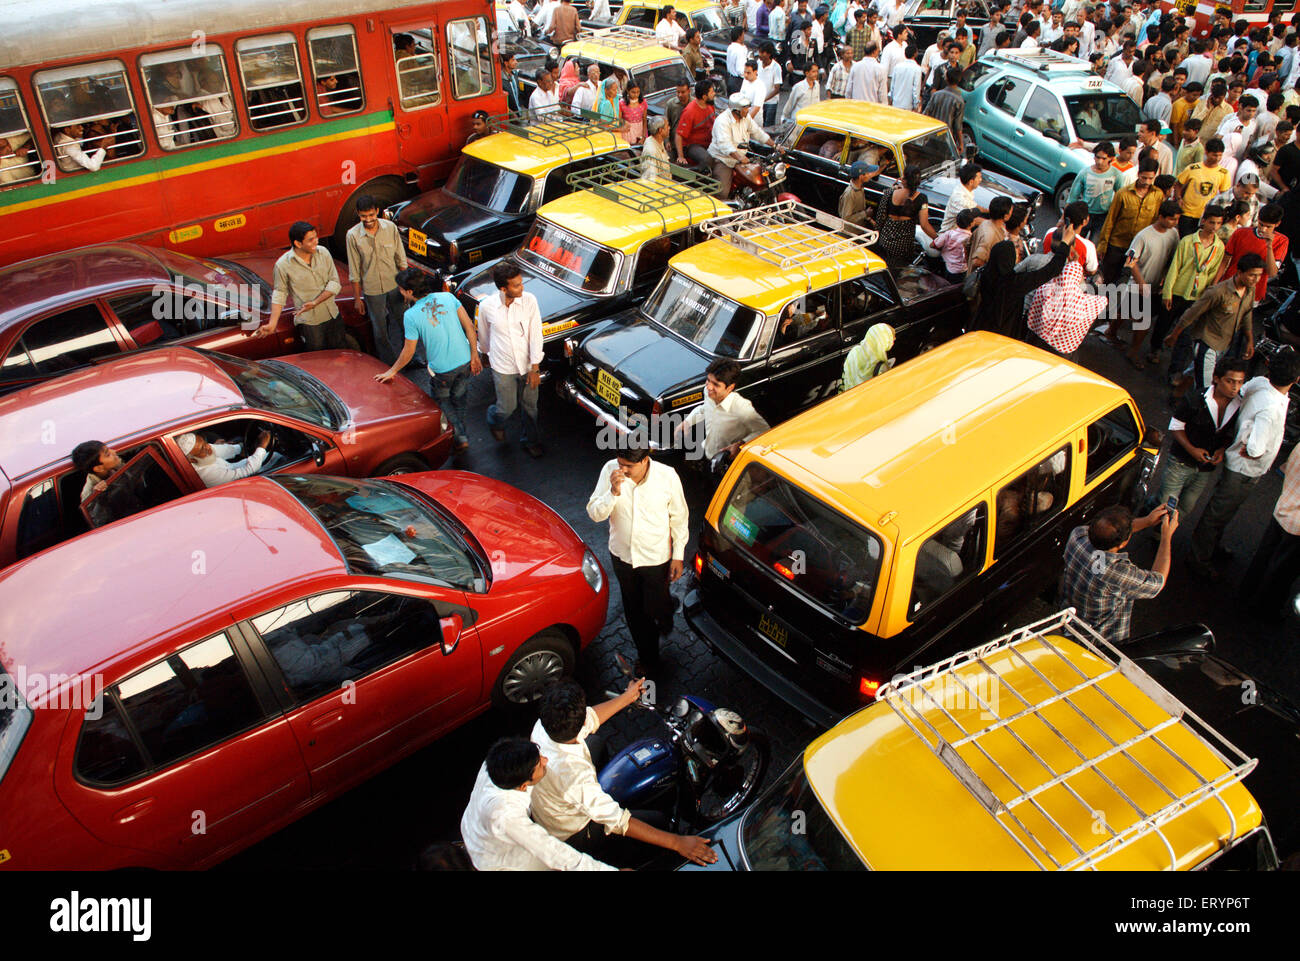 mumbai traffic jam Mumbai traffic jam: government tells hc, potholes and bad roads are main causes the maharashtra government told the bombay high court today that one of the primary reasons for traffic congestion.